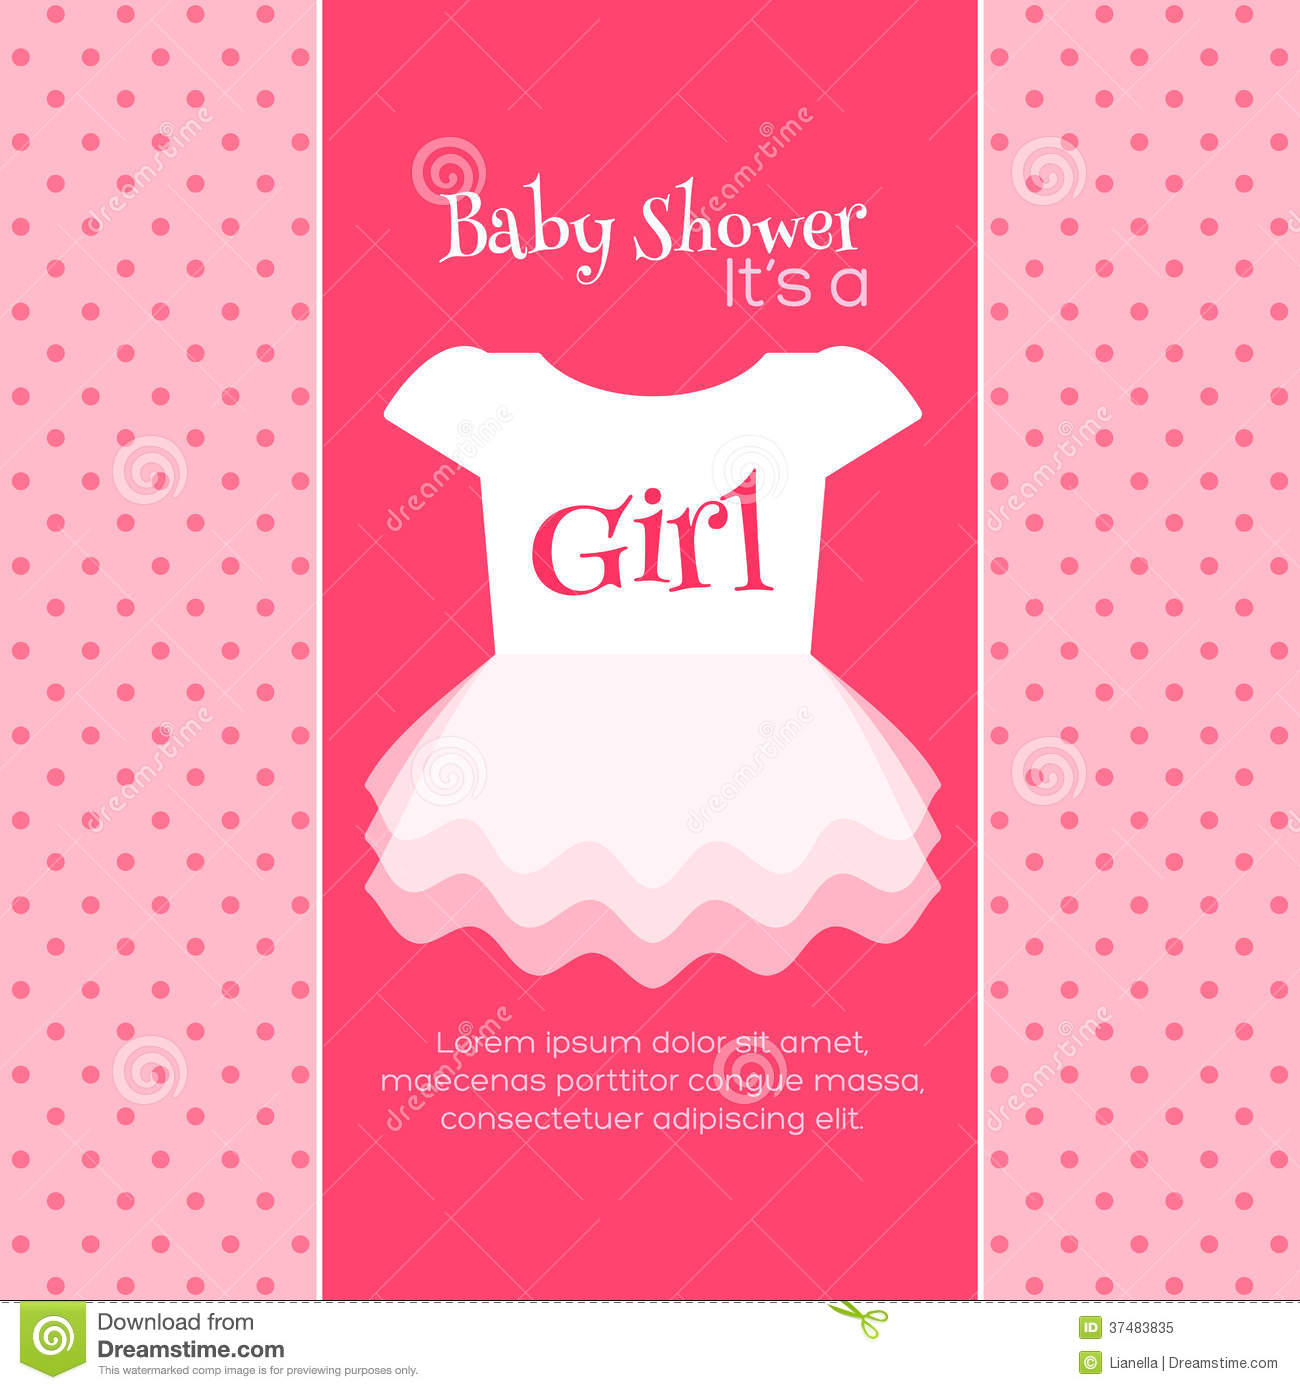 Girl baby shower invitations templates baby shower invitation template royalty free stock photo image filmwisefo